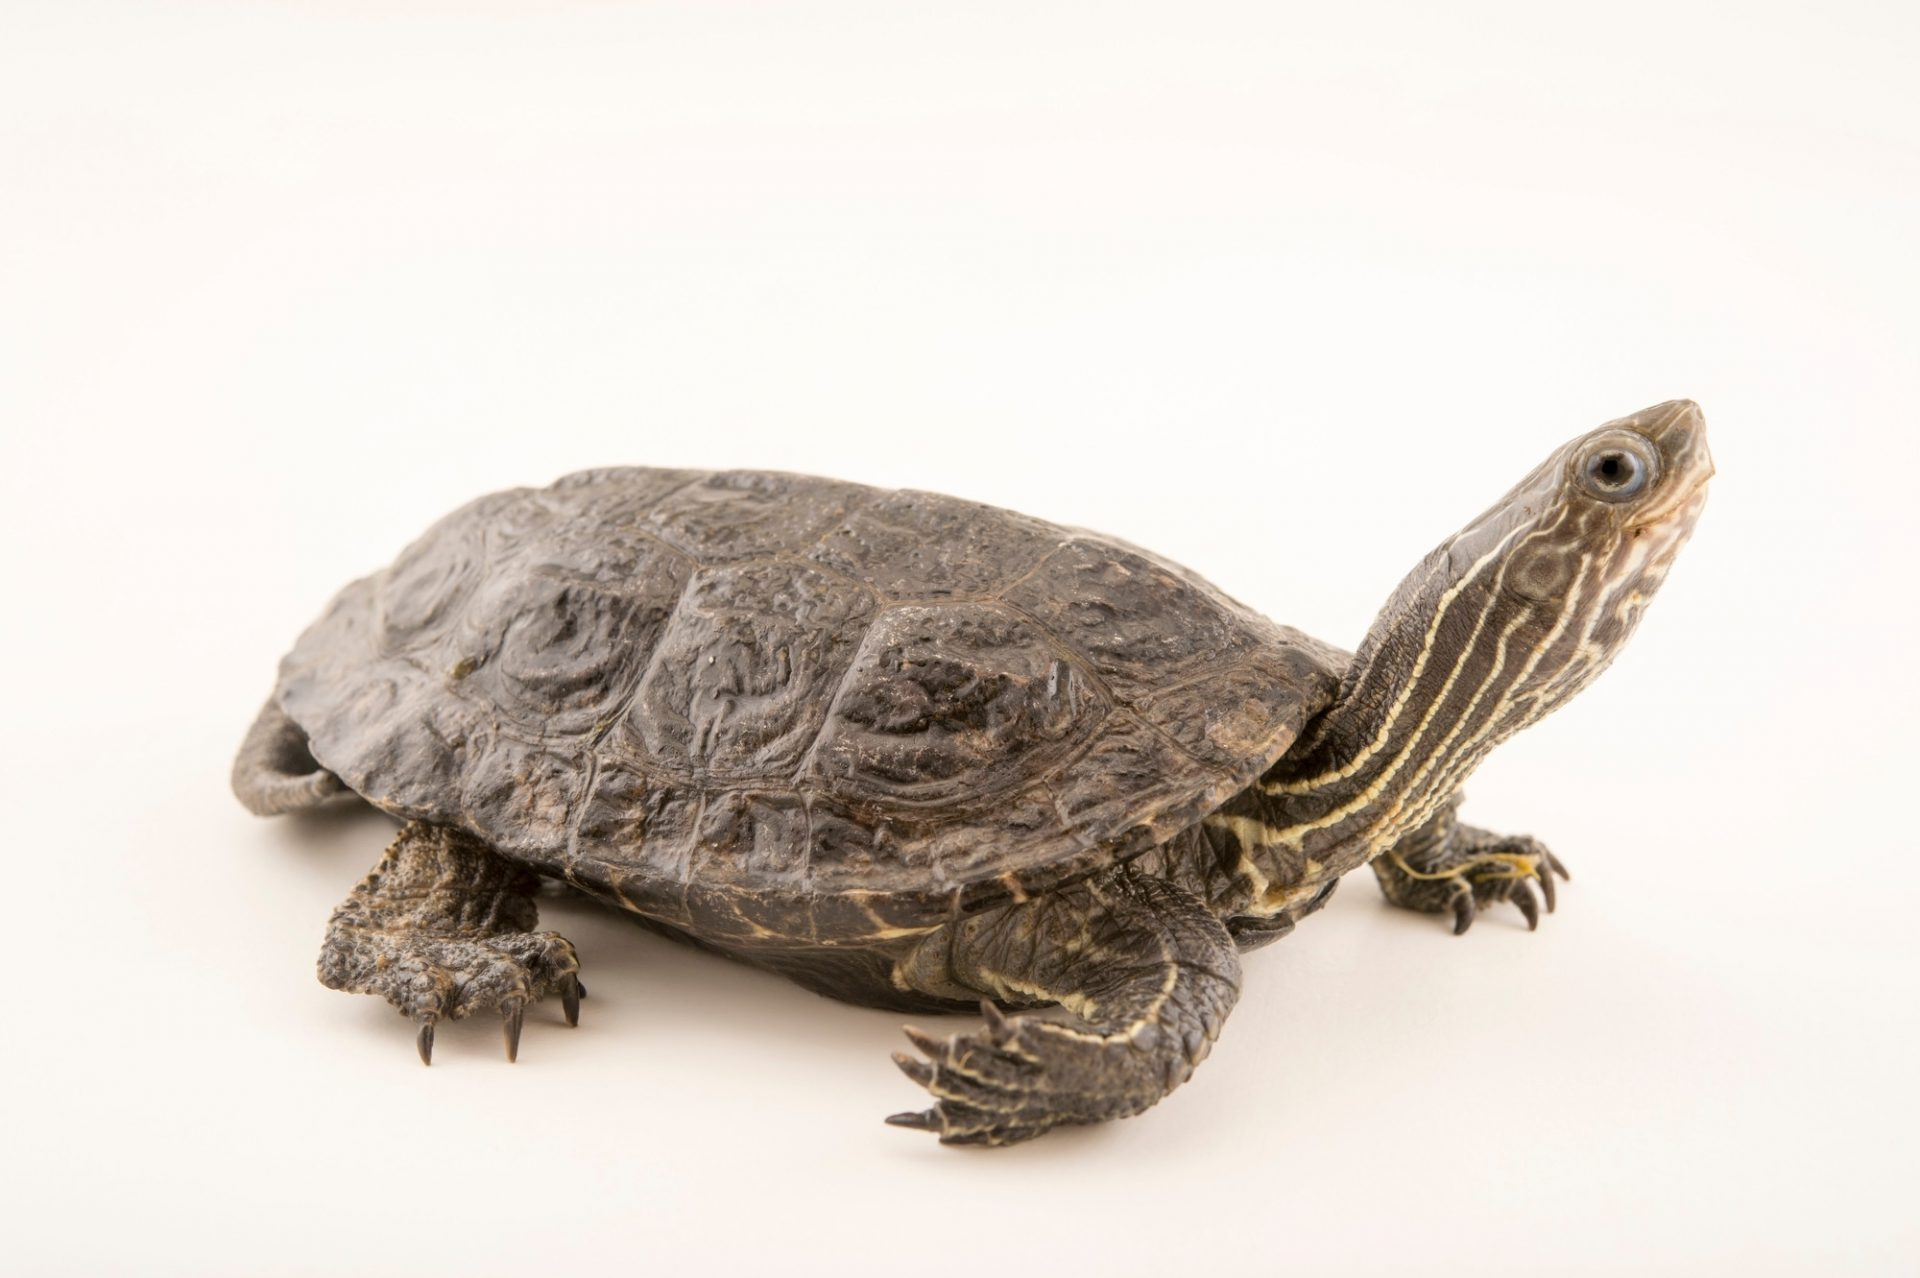 Photo: Eurasian pond turtle (Mauremys rivulata) at the Plzen Zoo in the Czech Republic.